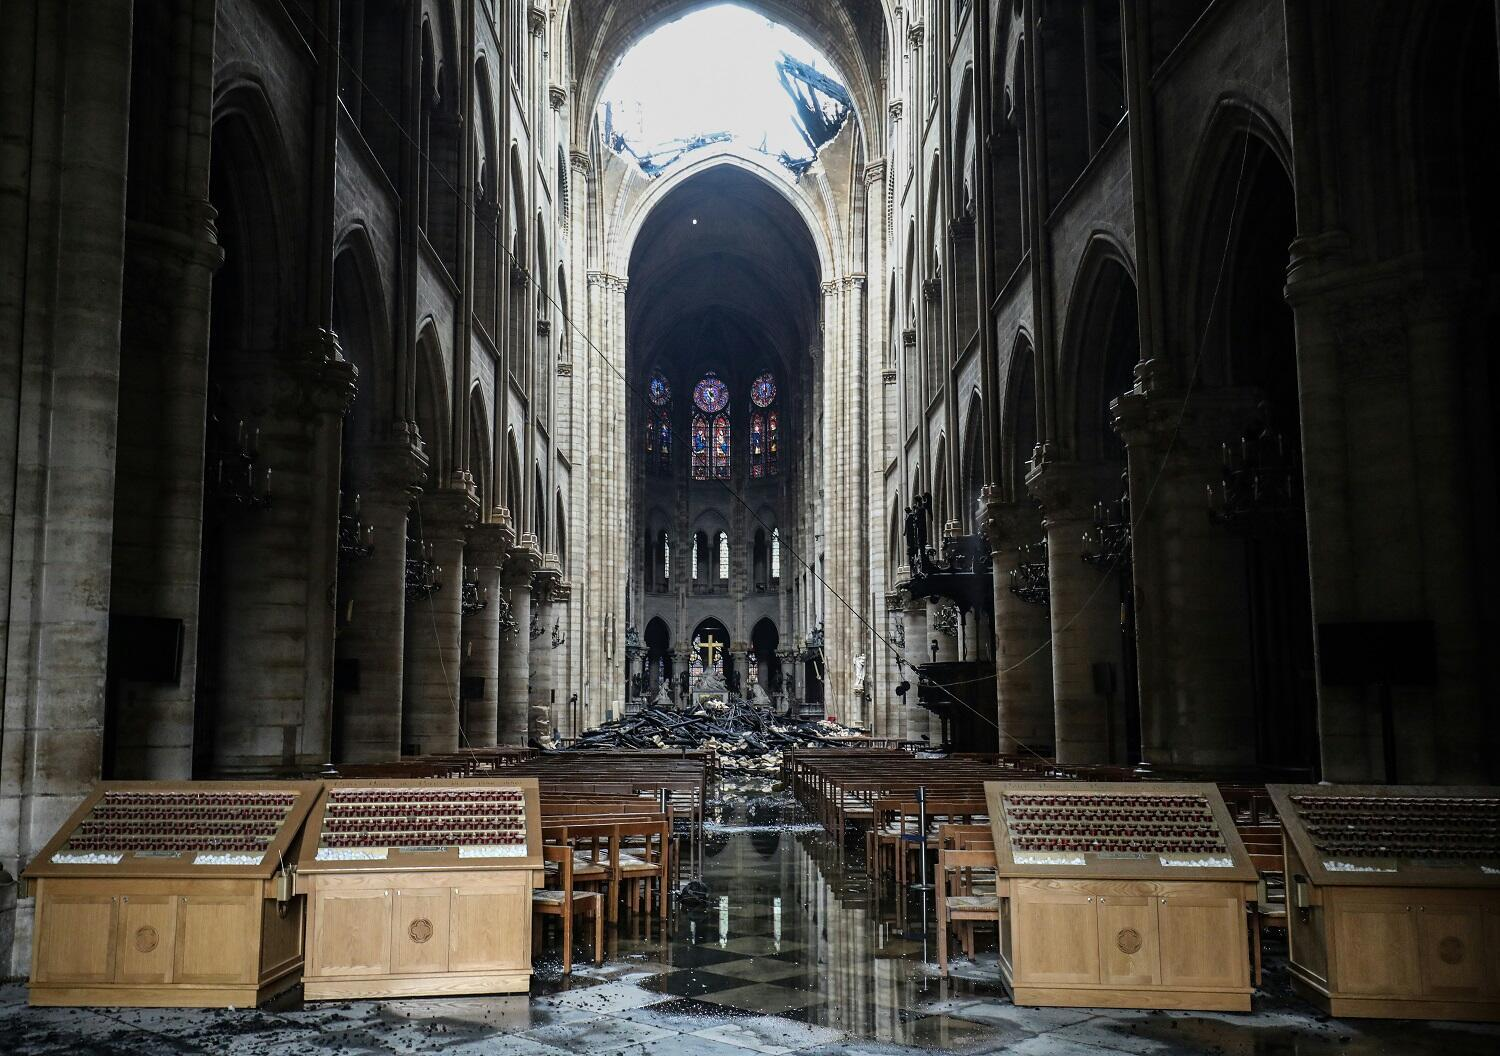 The Notre Dame after the fire, 16 April 2019